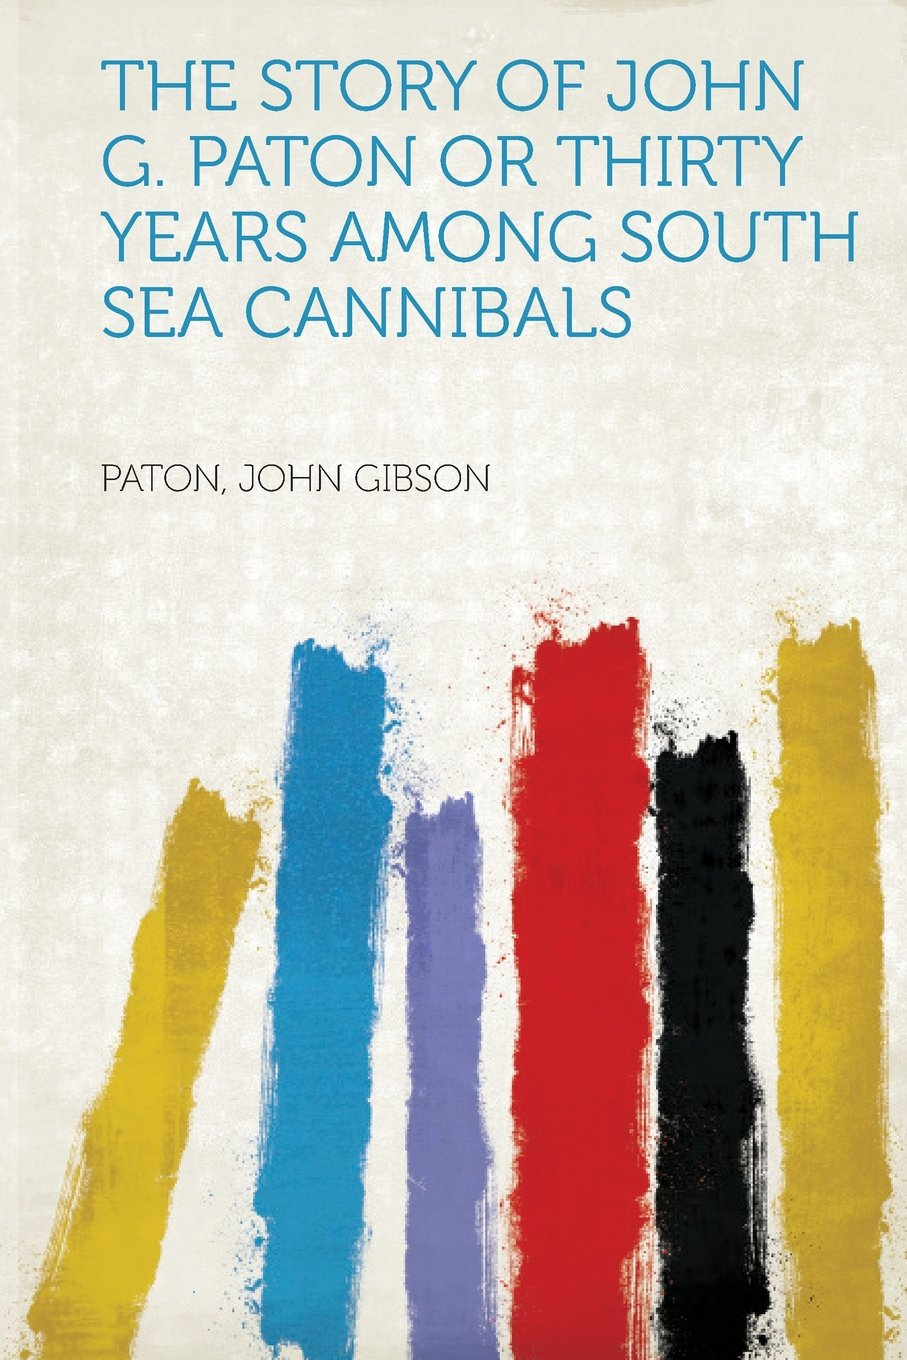 The Story of John G. Paton Or Thirty Years Among South Sea Cannibals pdf